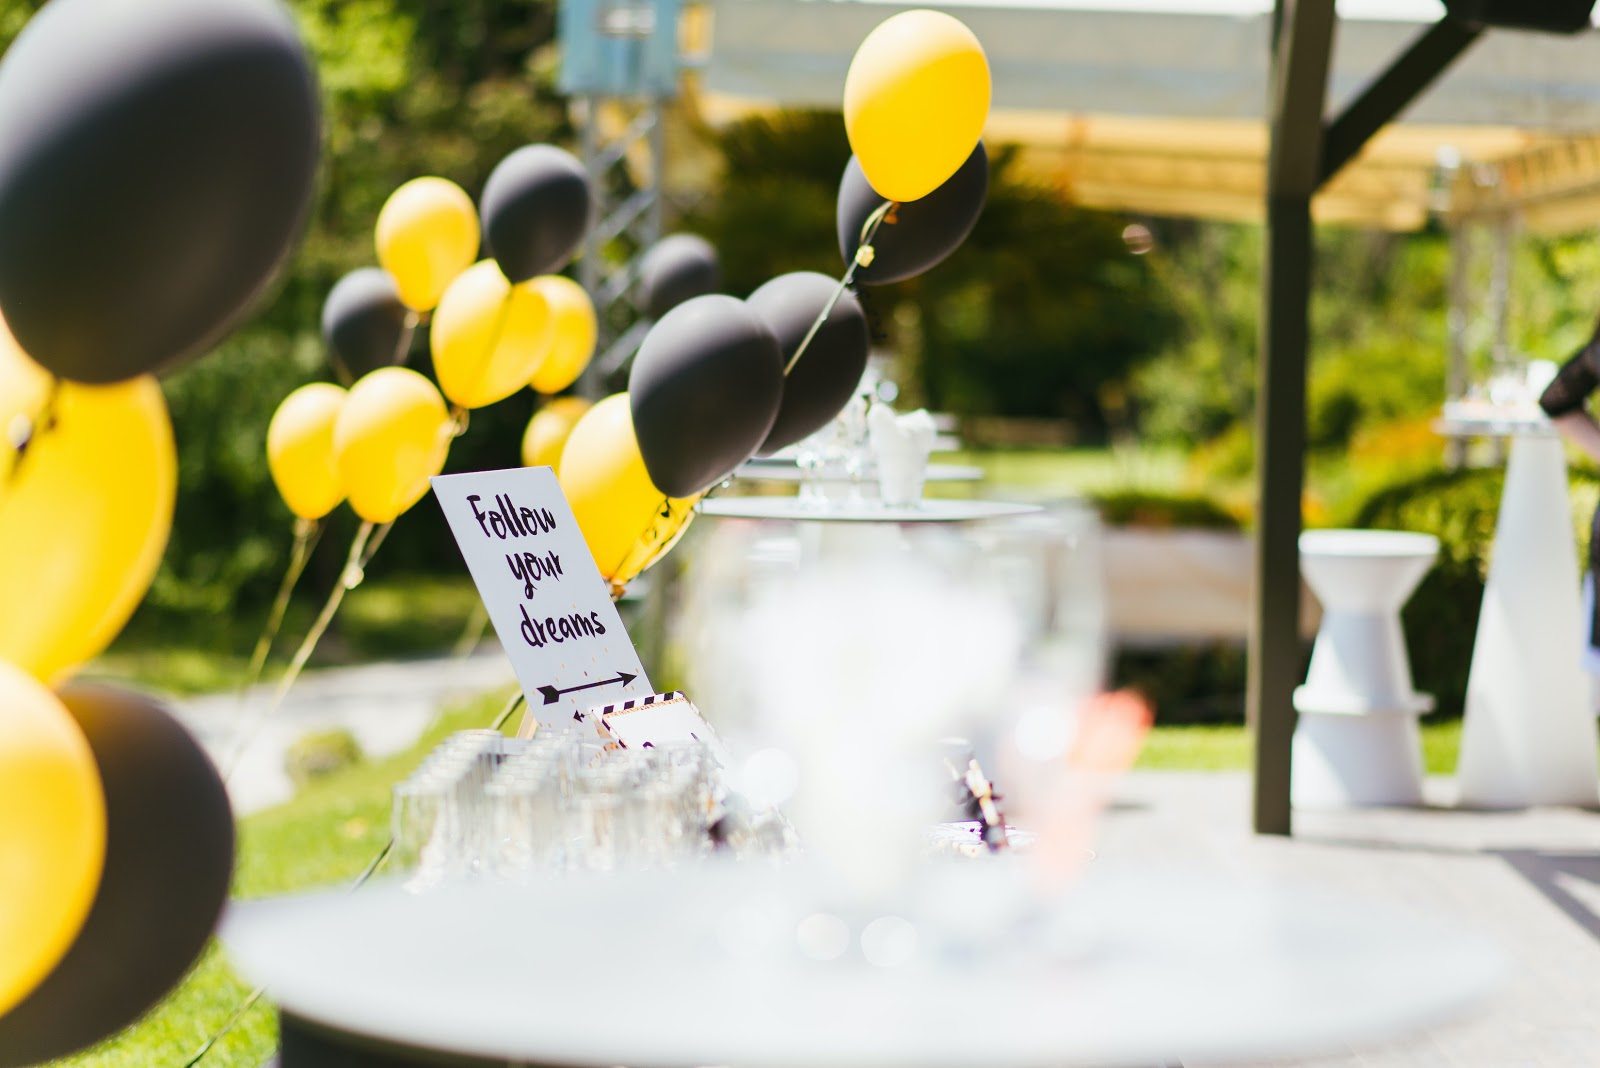 Black and yellow balloon on a party table